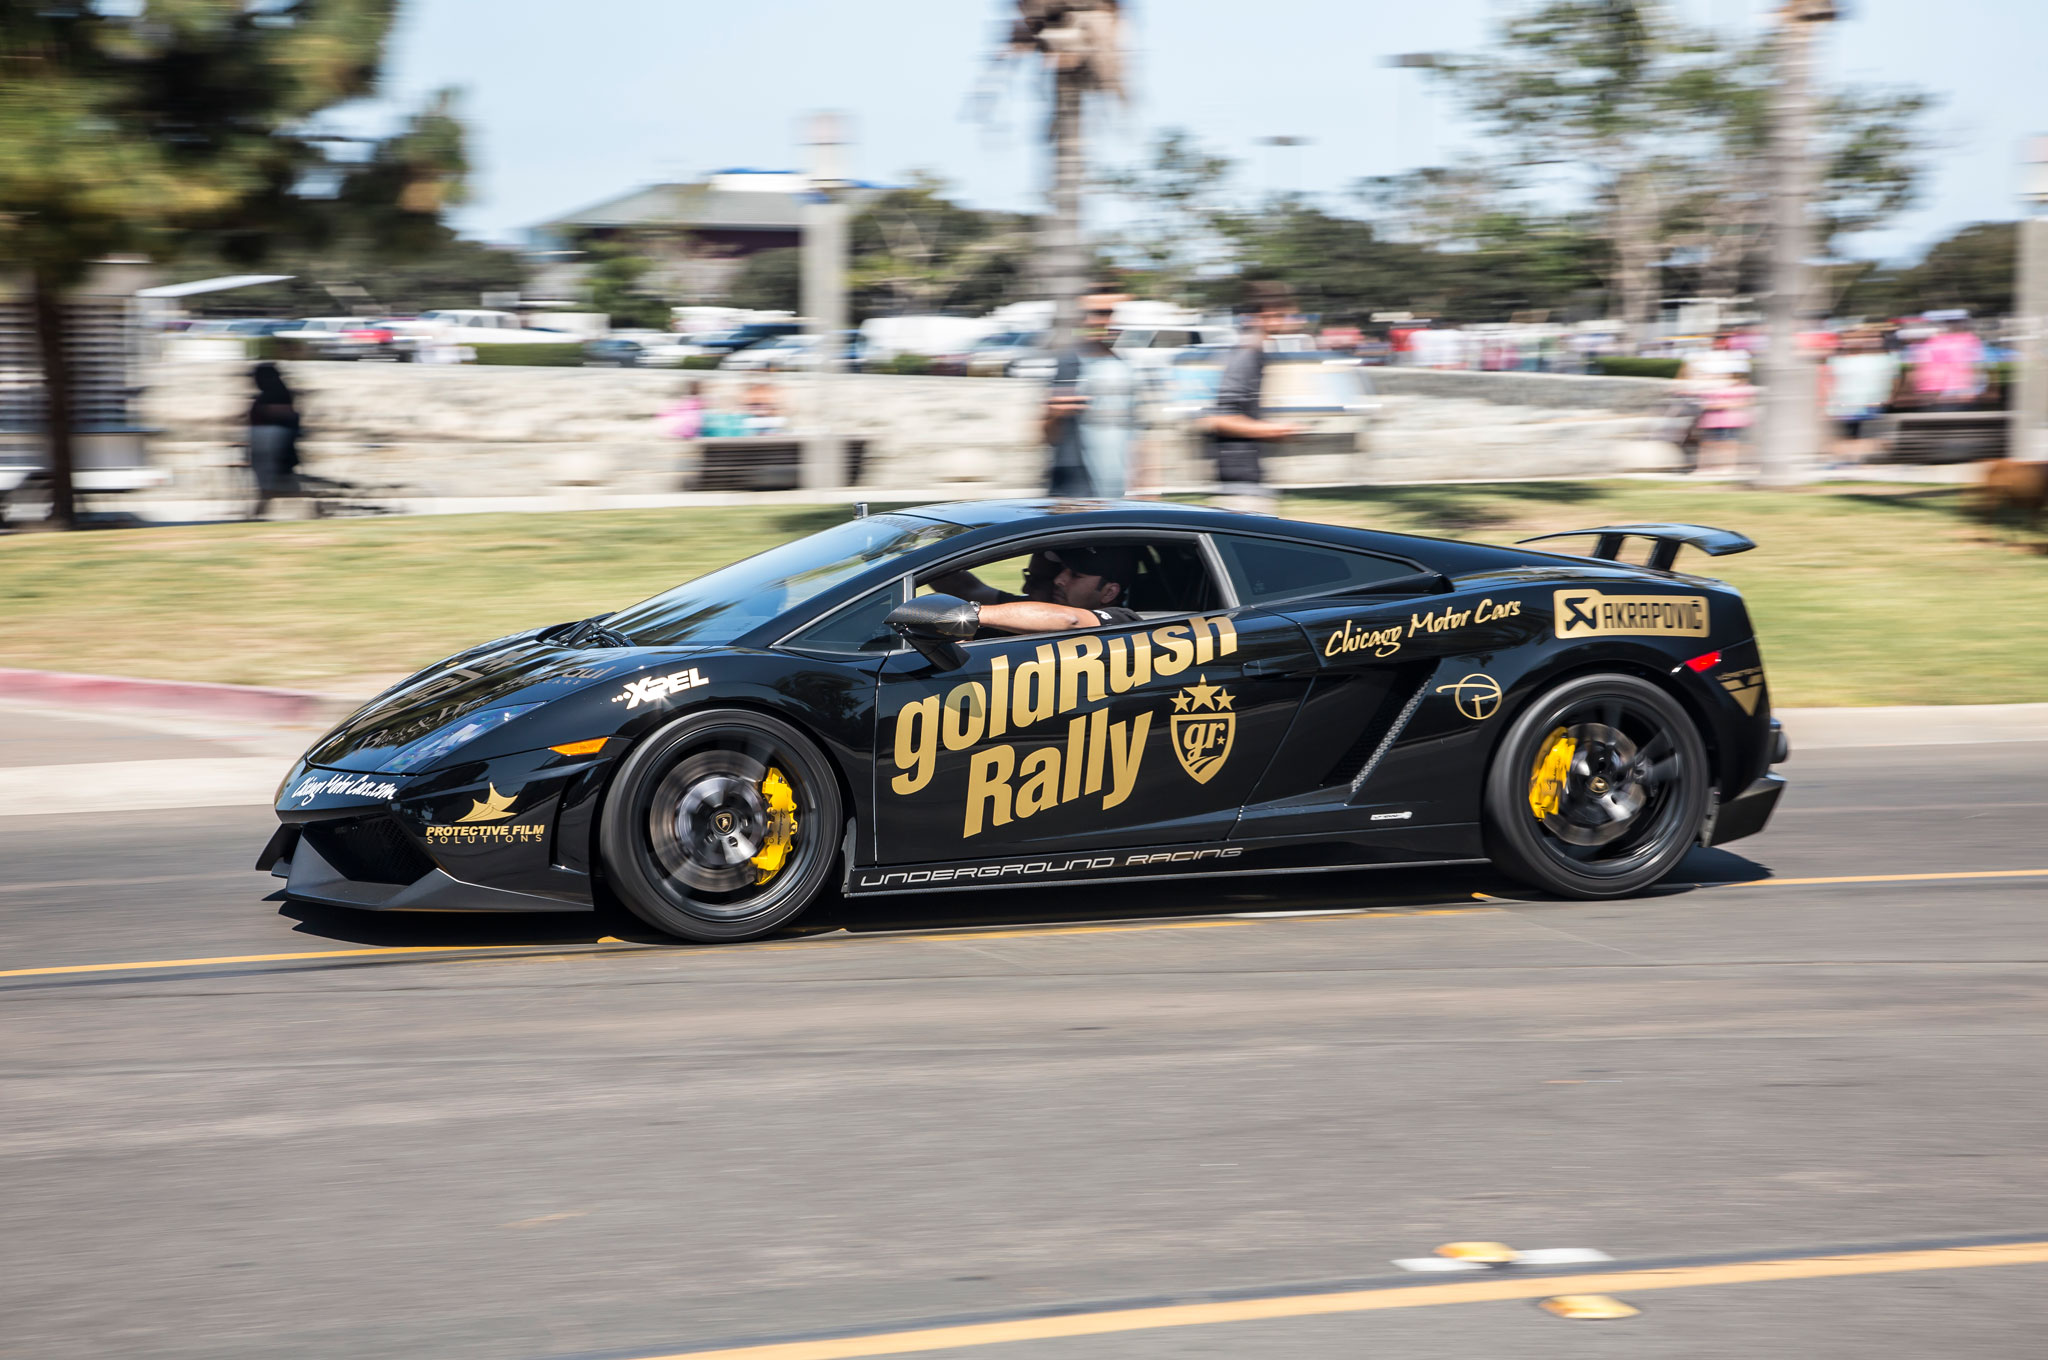 the 8 hottest exotic cars at the seventh-annual goldrush rally